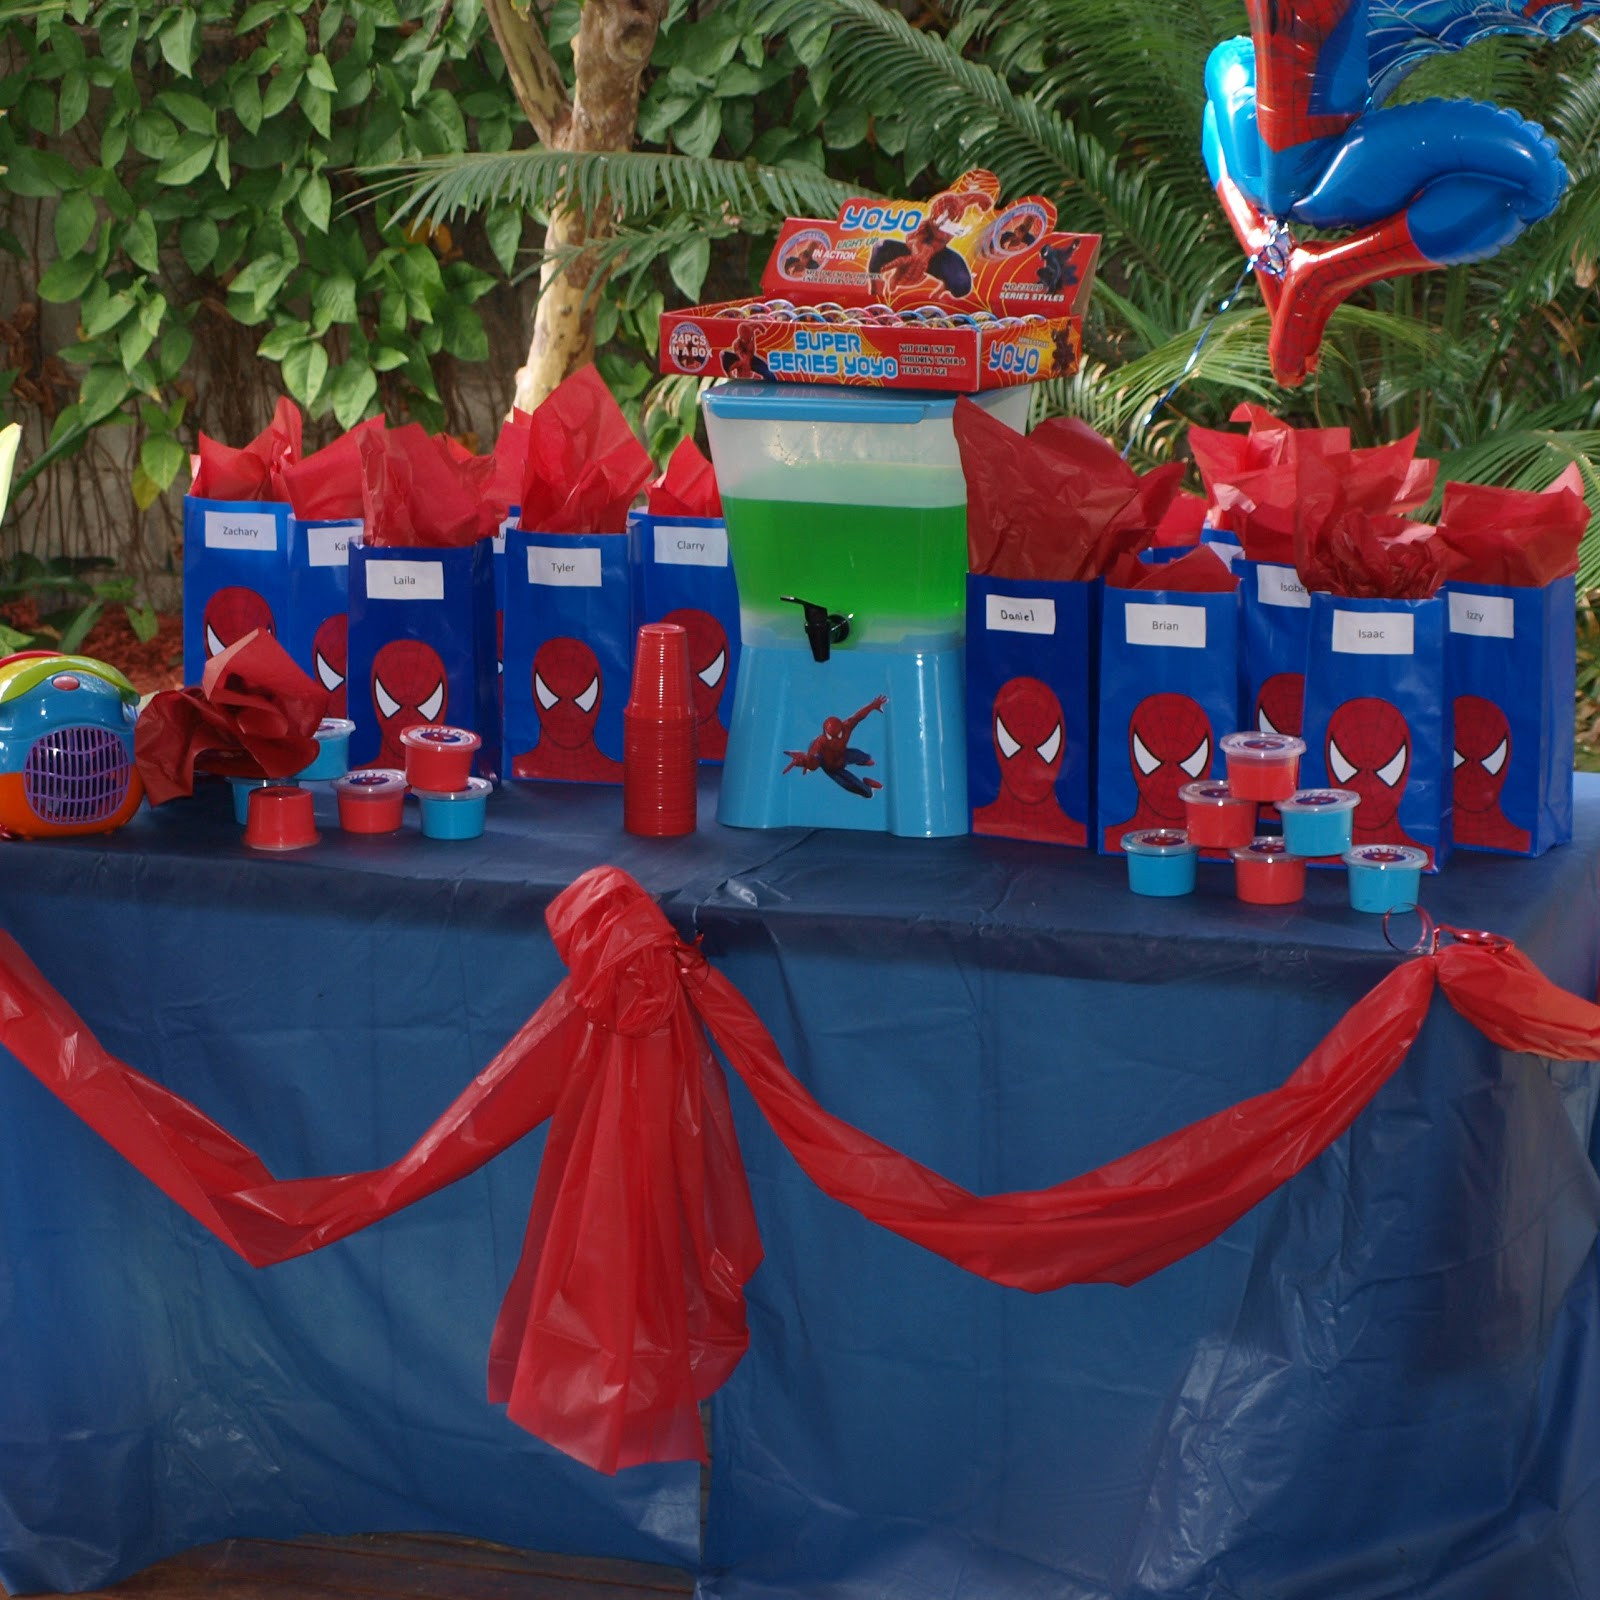 Best ideas about Spiderman Birthday Party . Save or Pin 37 Cute Spiderman Birthday Party Ideas Now.